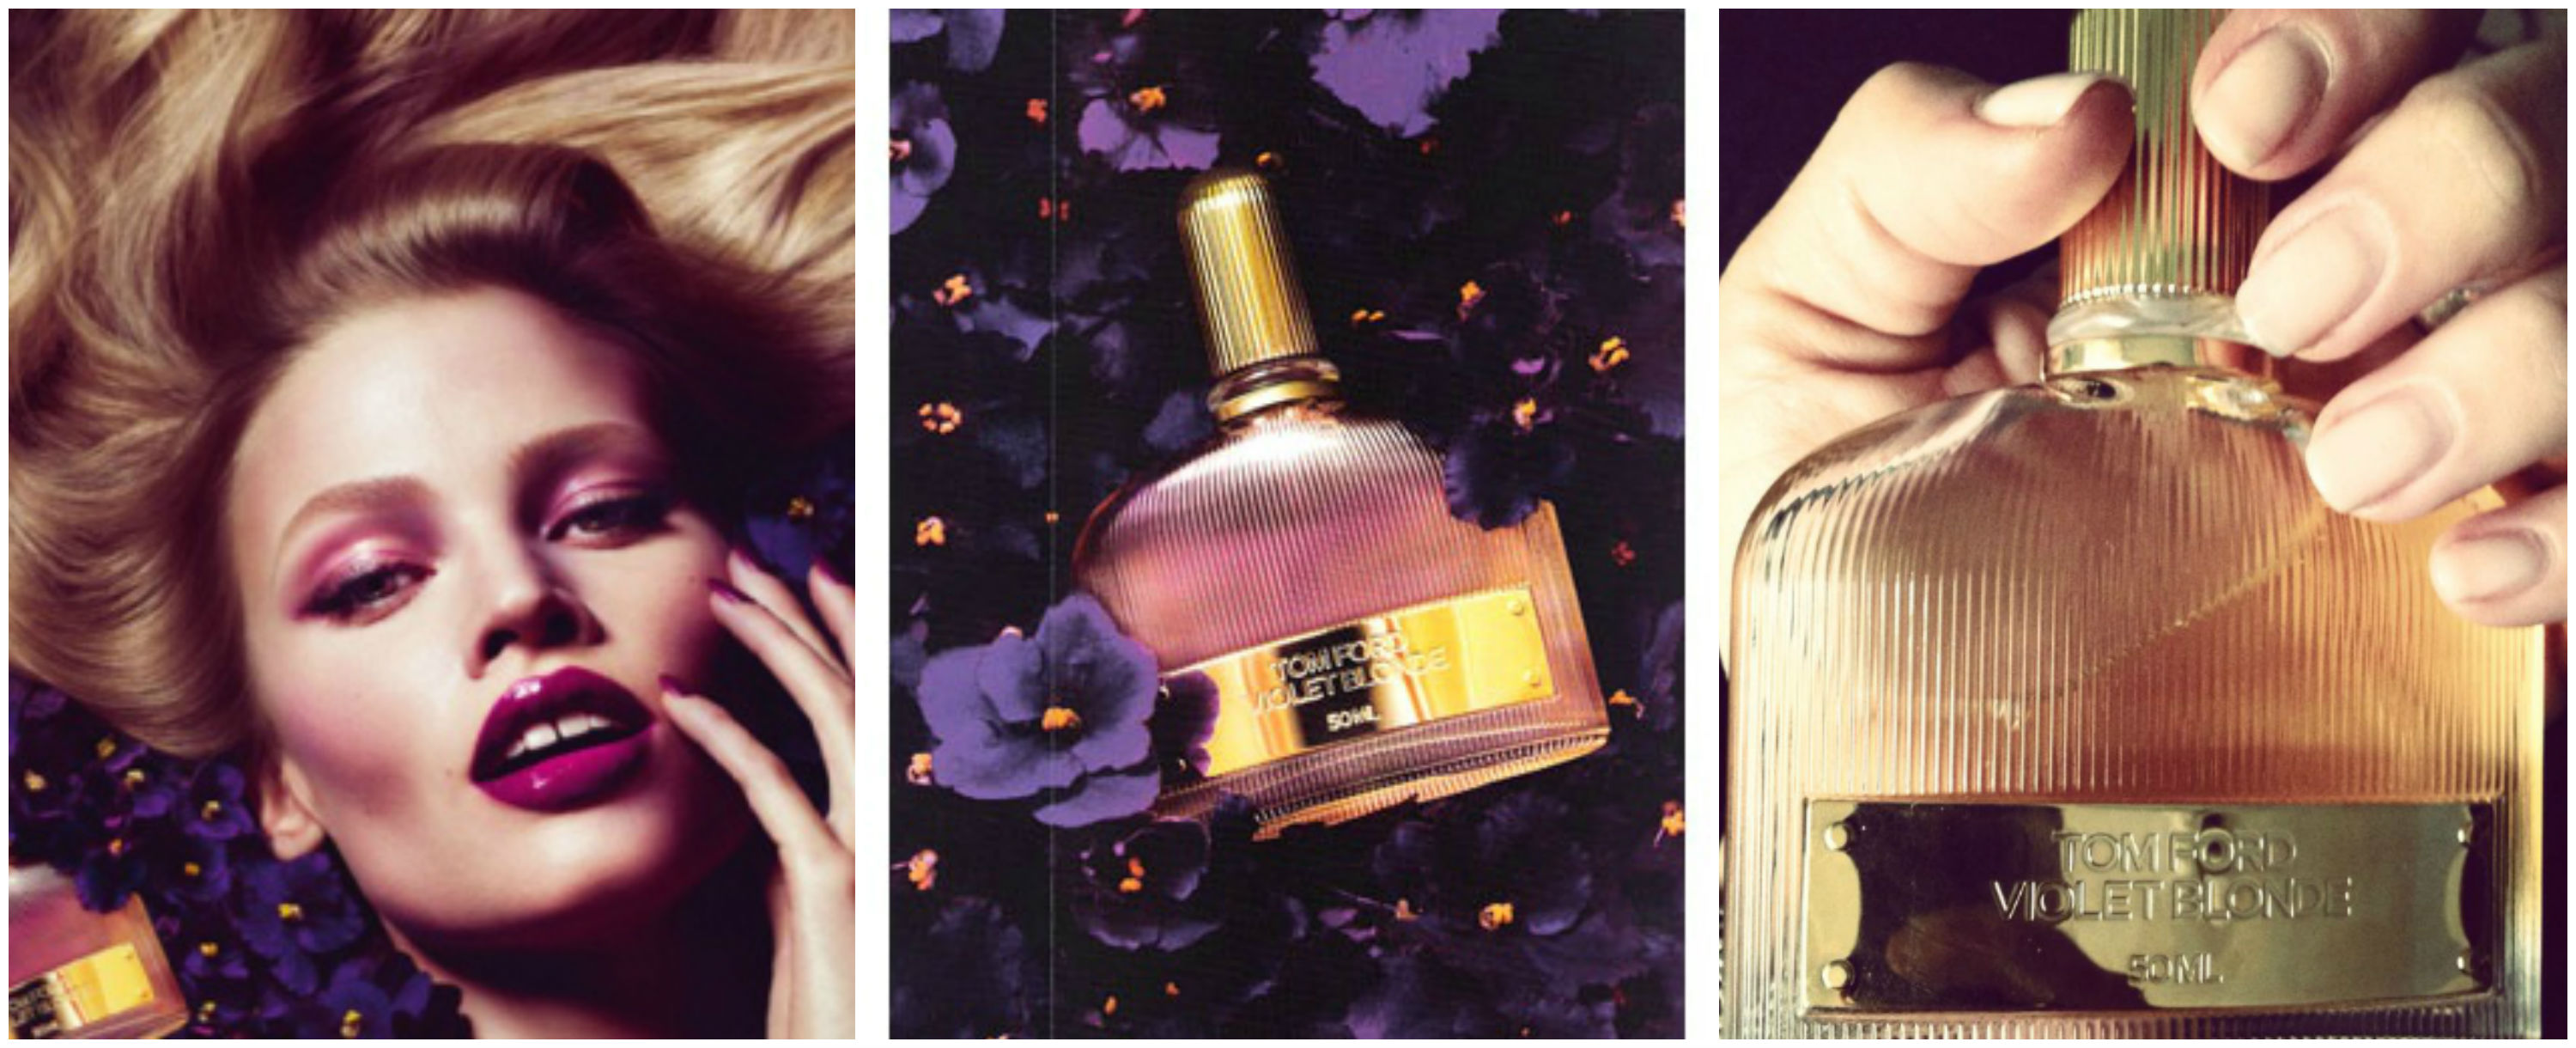 Perfume of the Day: Violet Blonde by Tom Ford